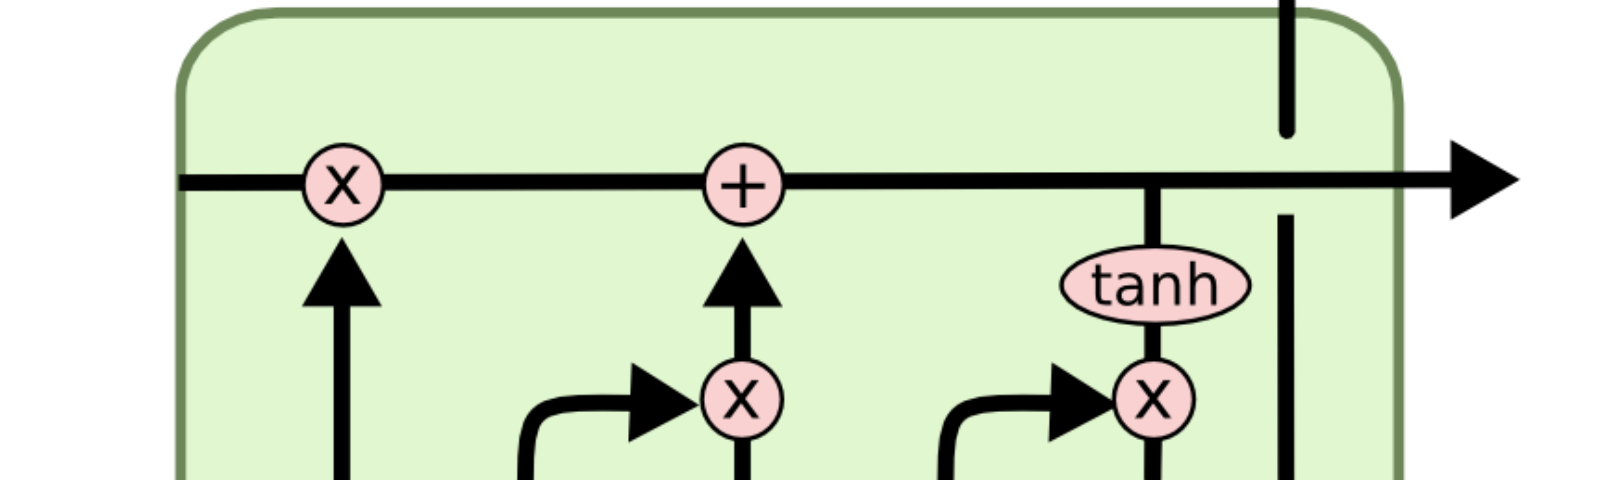 Internal Structure of LSTM. tanh function is used as it controls the flow of information and saves short term memory